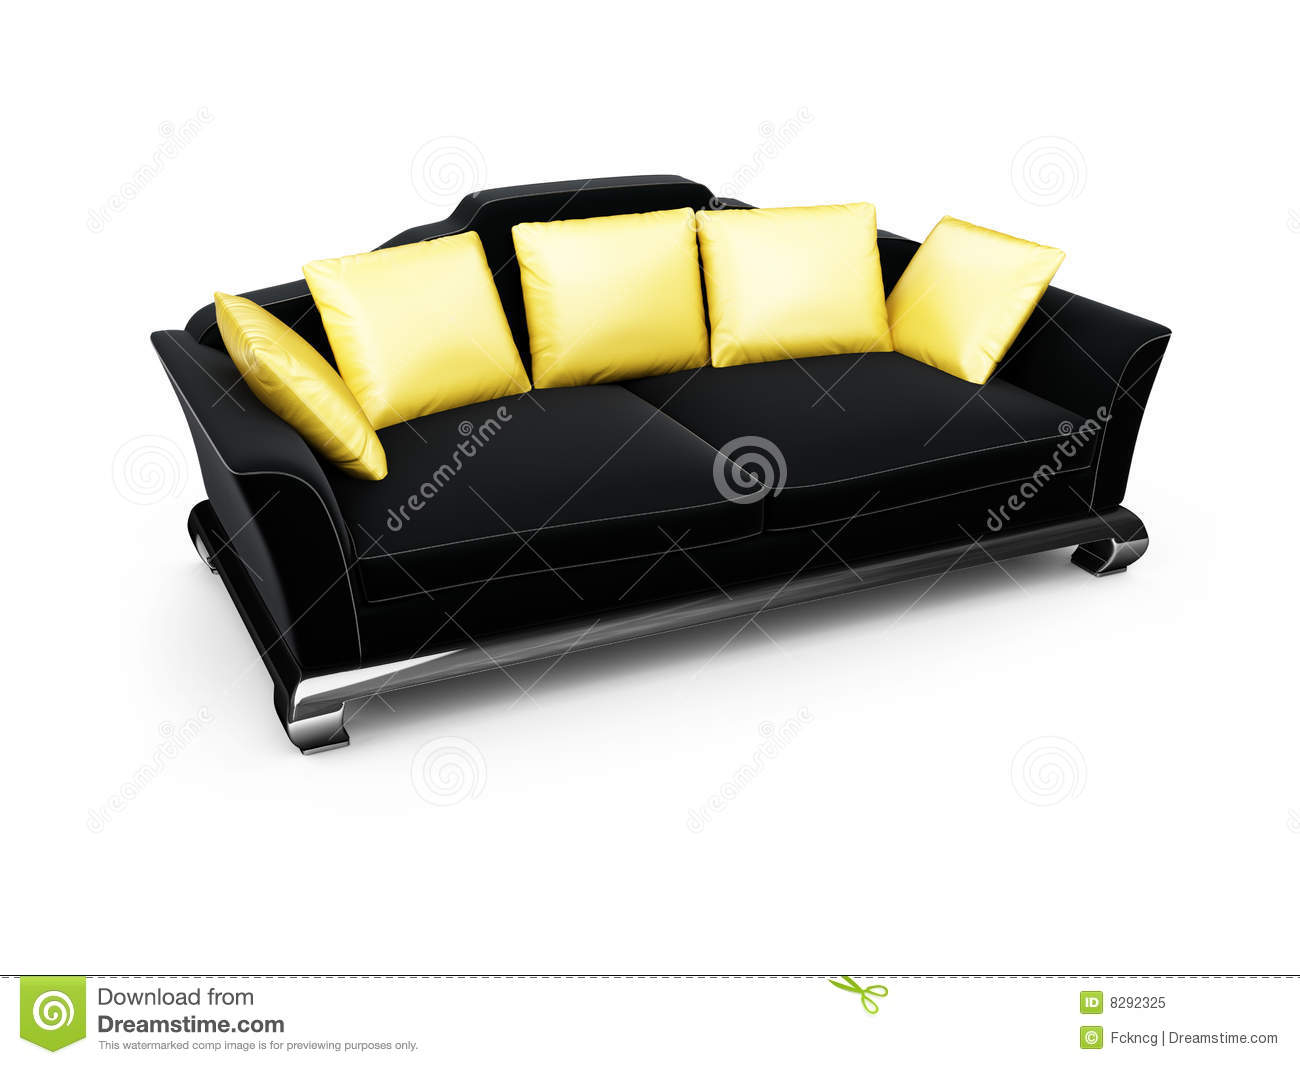 Picture of: Black Couch With Gold Pillows Over White Stock Illustration Illustration Of Rest Render 8292325